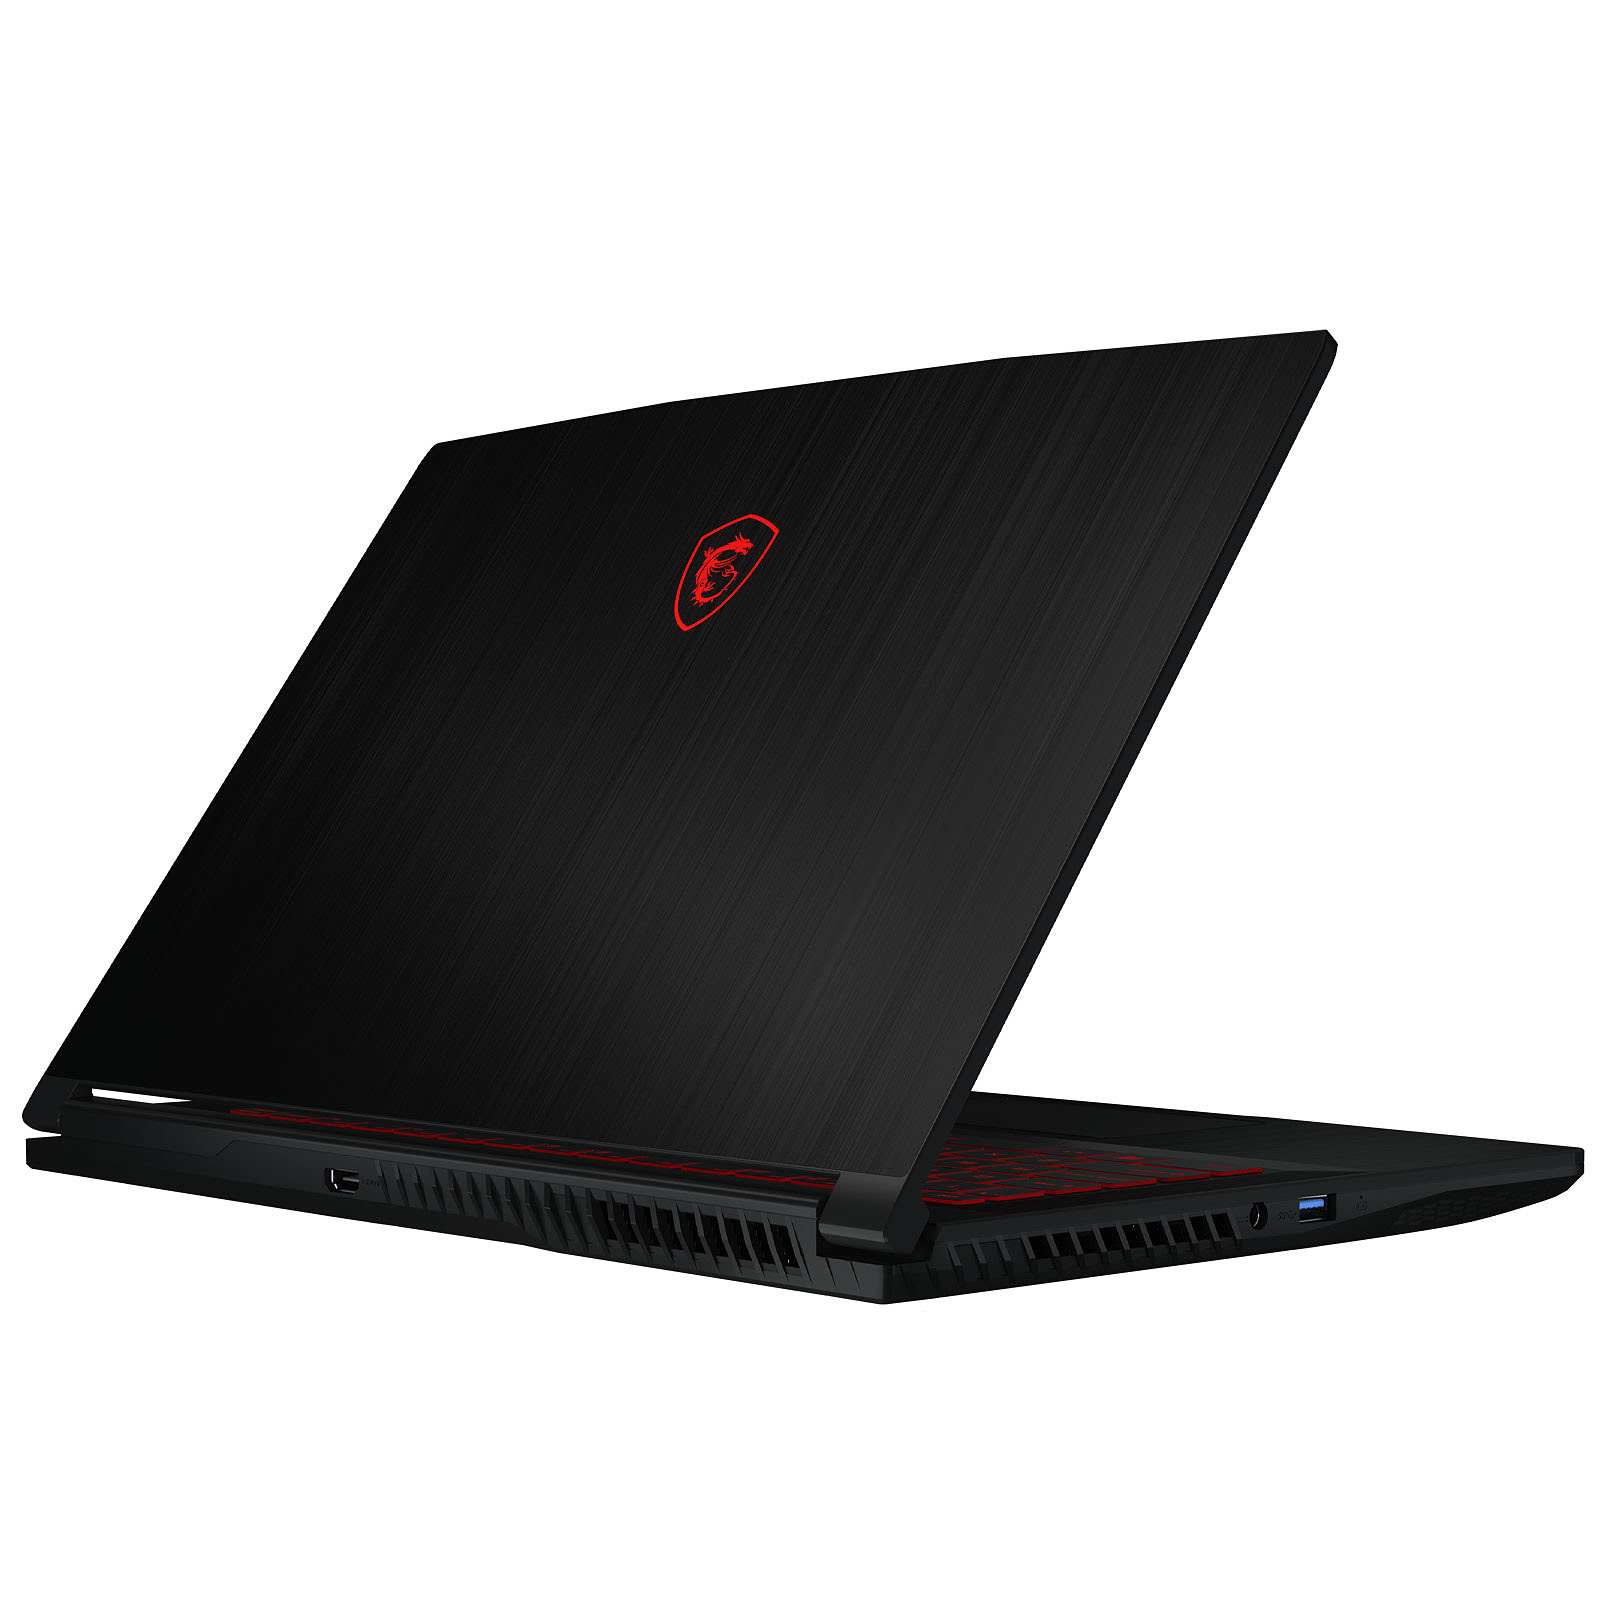 MSI 9S7-16R412-683 - PC portable MSI - Cybertek.fr - 1